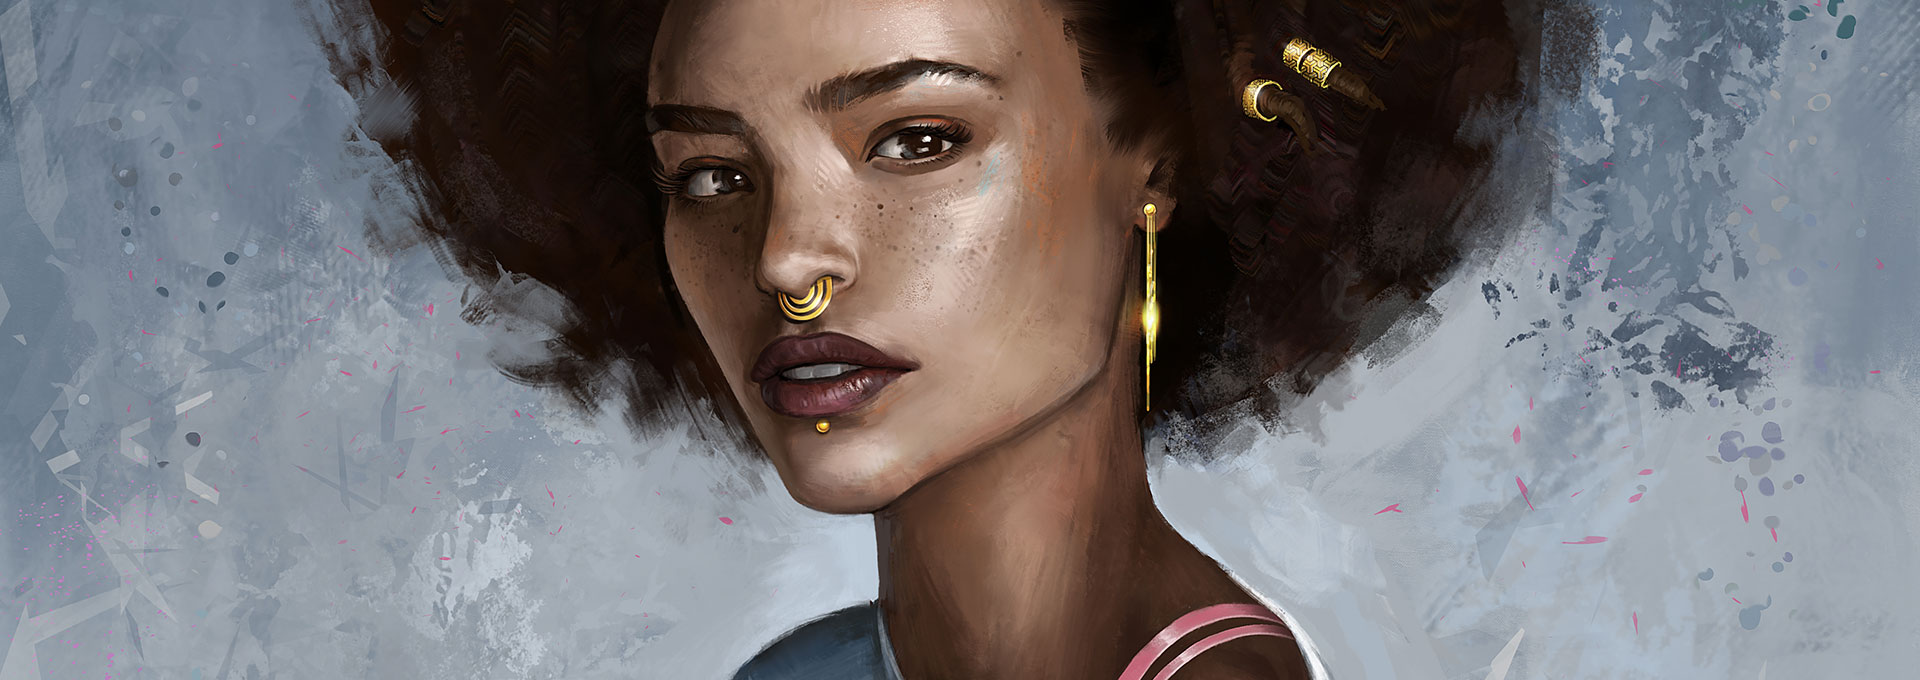 Digital Painting Tips: Achieving Realistic Look With Texture Brushes